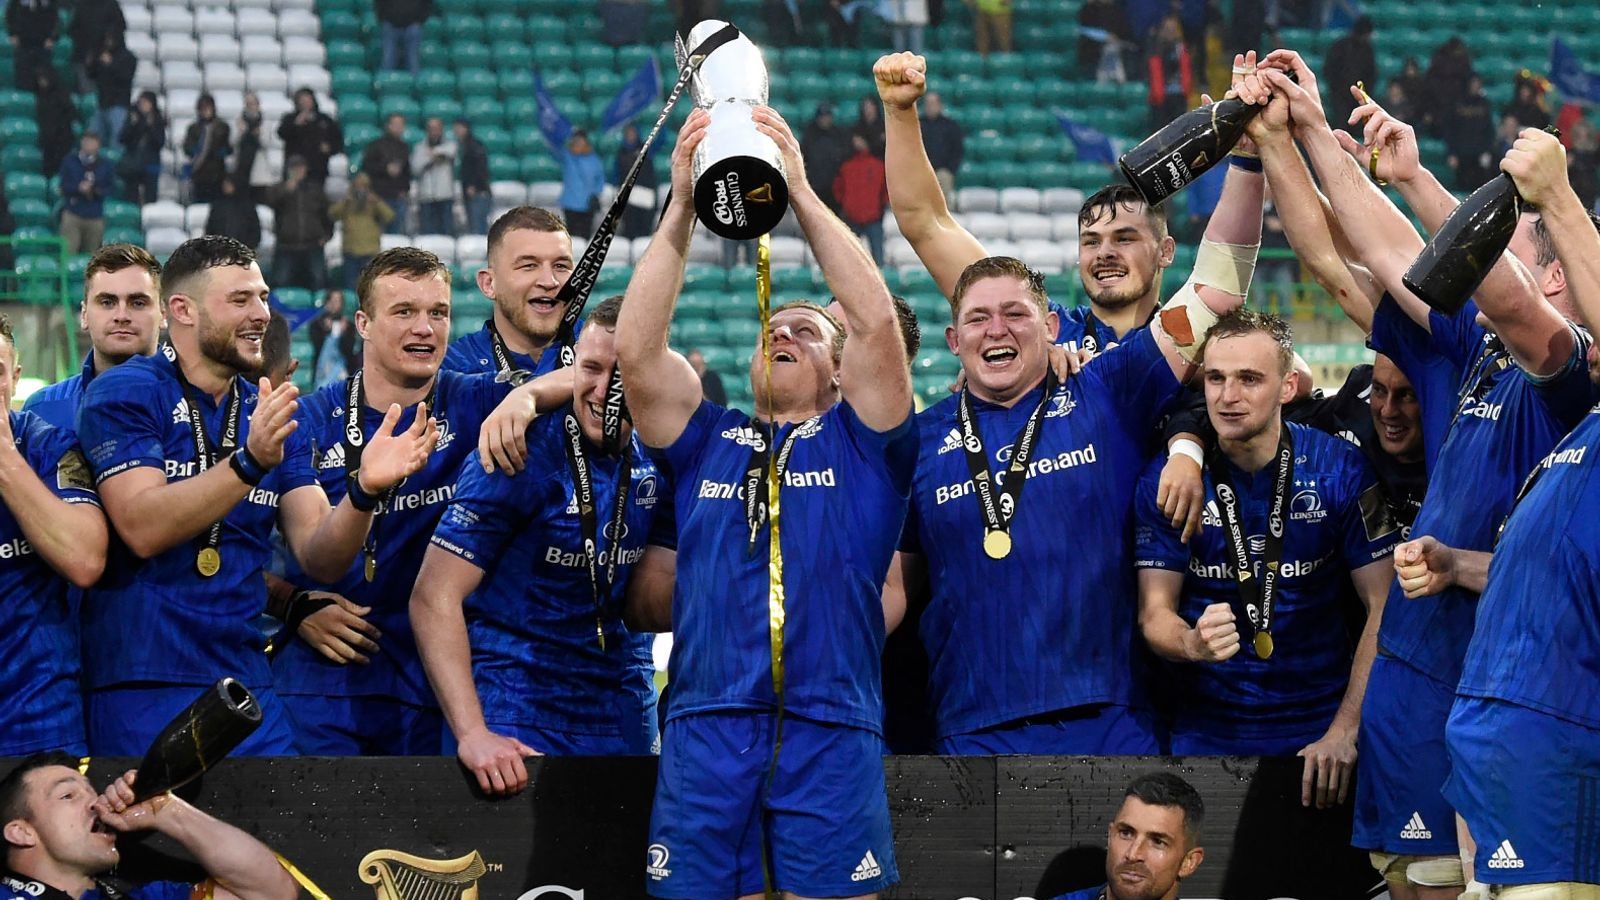 Pro14 secures CVC Capital Partners investment